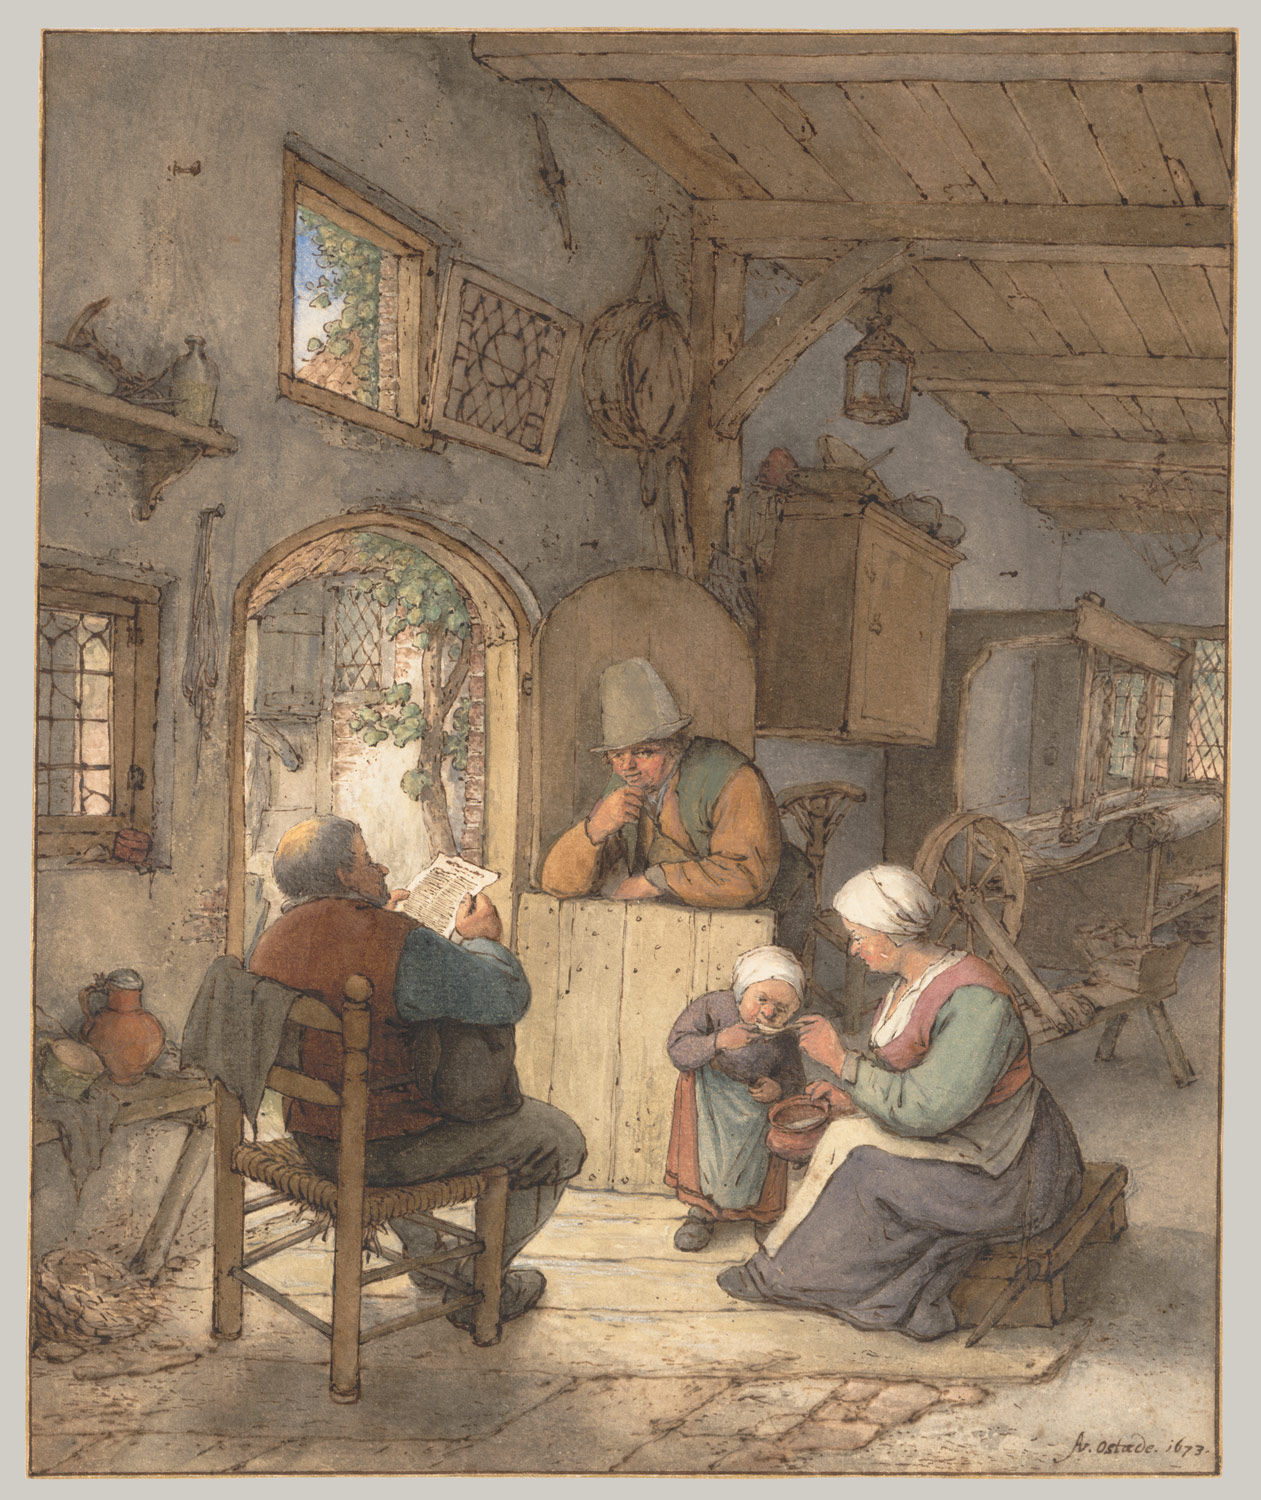 genre painting in northern europe essay heilbrunn timeline of reading the news at the weavers cottage